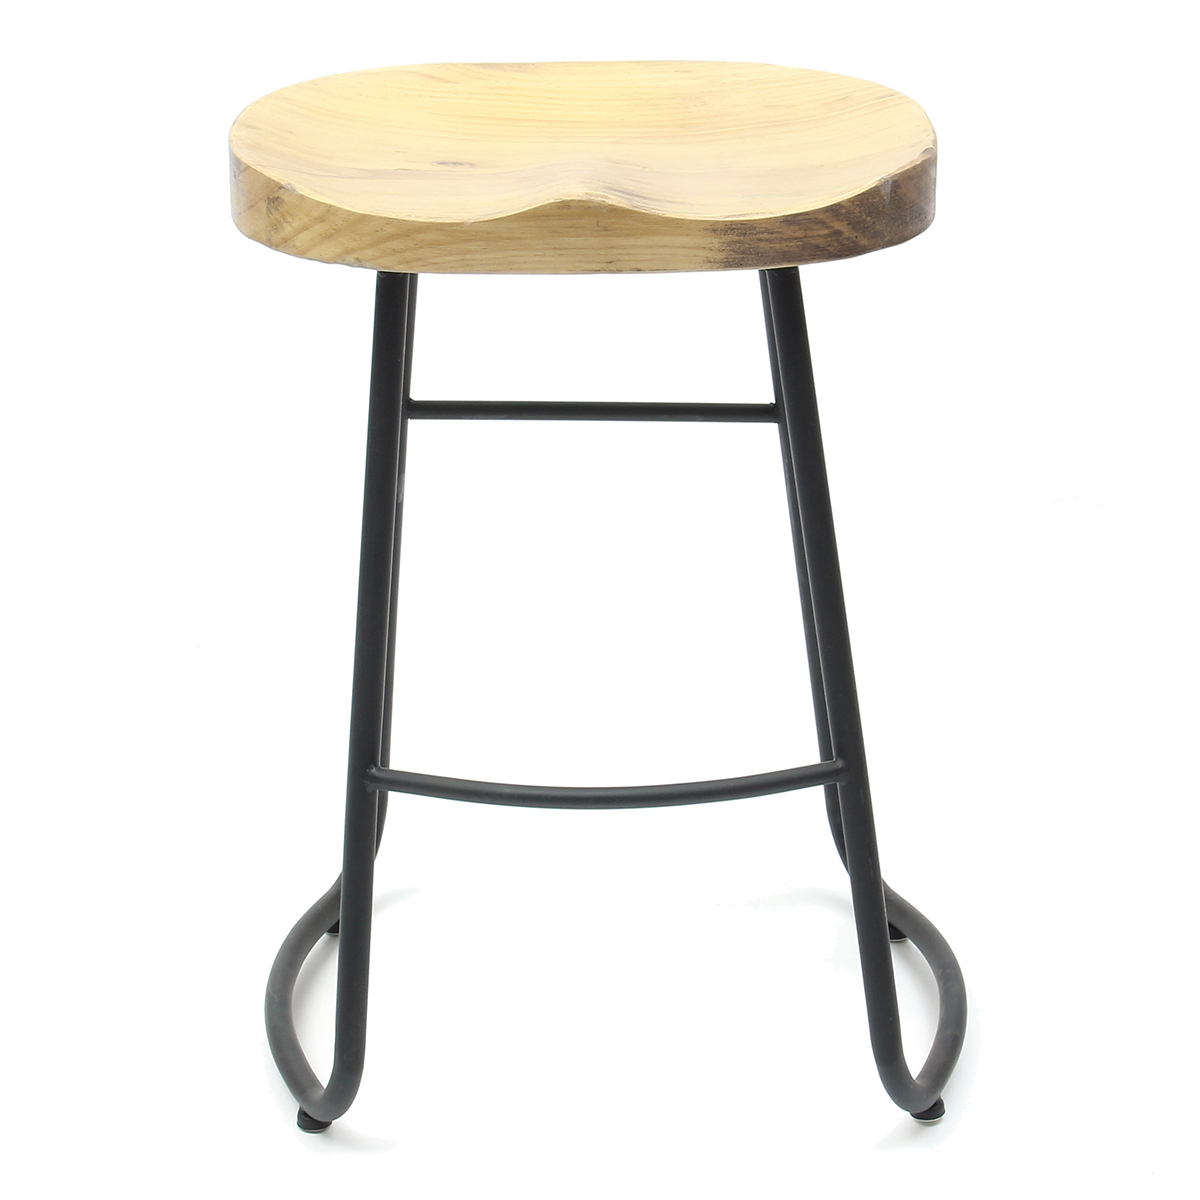 Prime Details About Vintage Bar Stool Retro Wooden Tractor Barstool Industrial Dining Chair 60Cm 1 Creativecarmelina Interior Chair Design Creativecarmelinacom